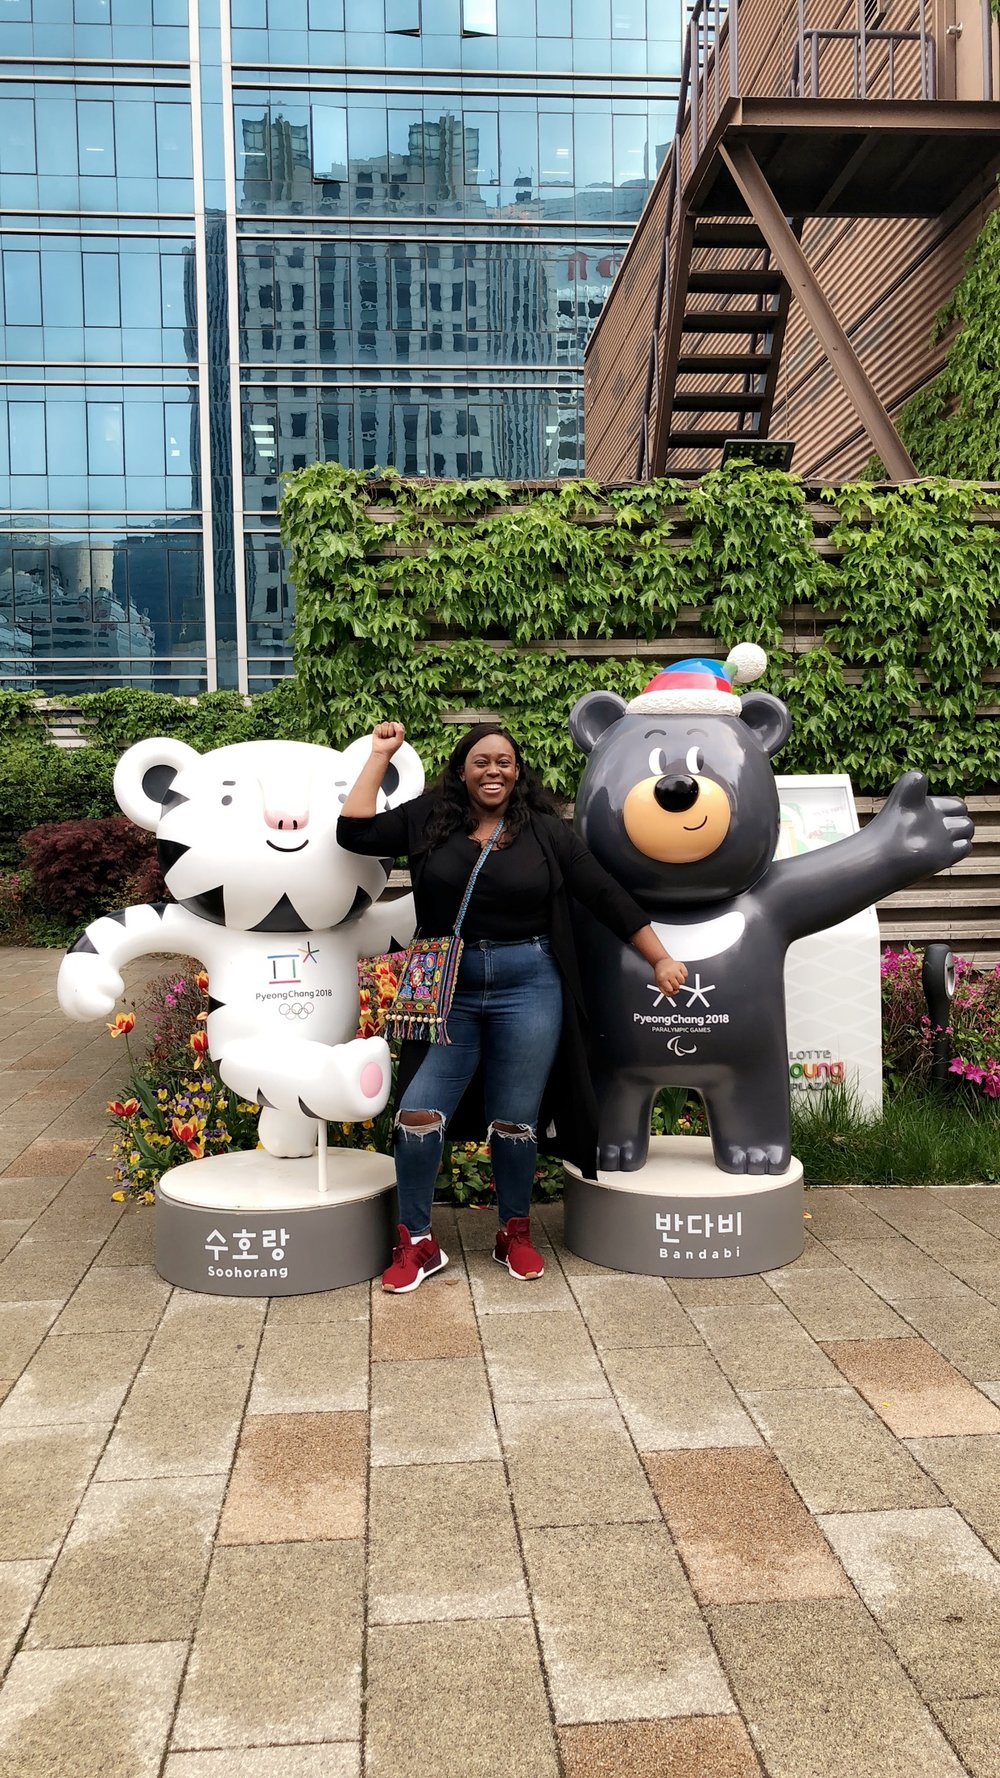 Sylvie Mougnangui - Internship Period : May 8th 2018, to August 28thNationality : FrenchUniversity : University of the Havre NormandyOriginal Activities:-Promote ACOPIA Café's in Twitter- Promote KPOP CAMP in Twitter- Create Partnerships with French organizations